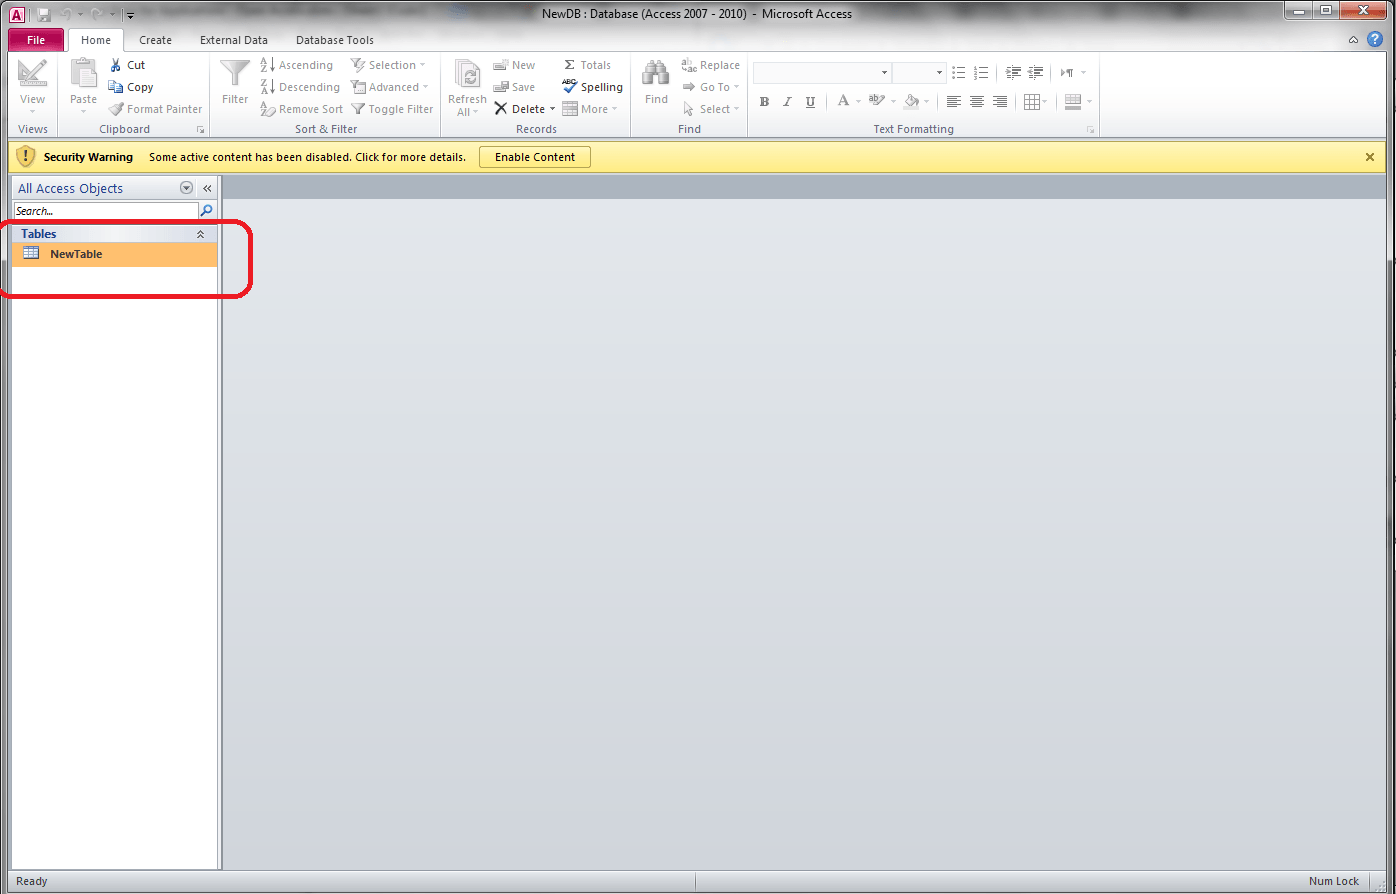 VBA, Open Access Database From Excel - VBA and VB Net Tutorials